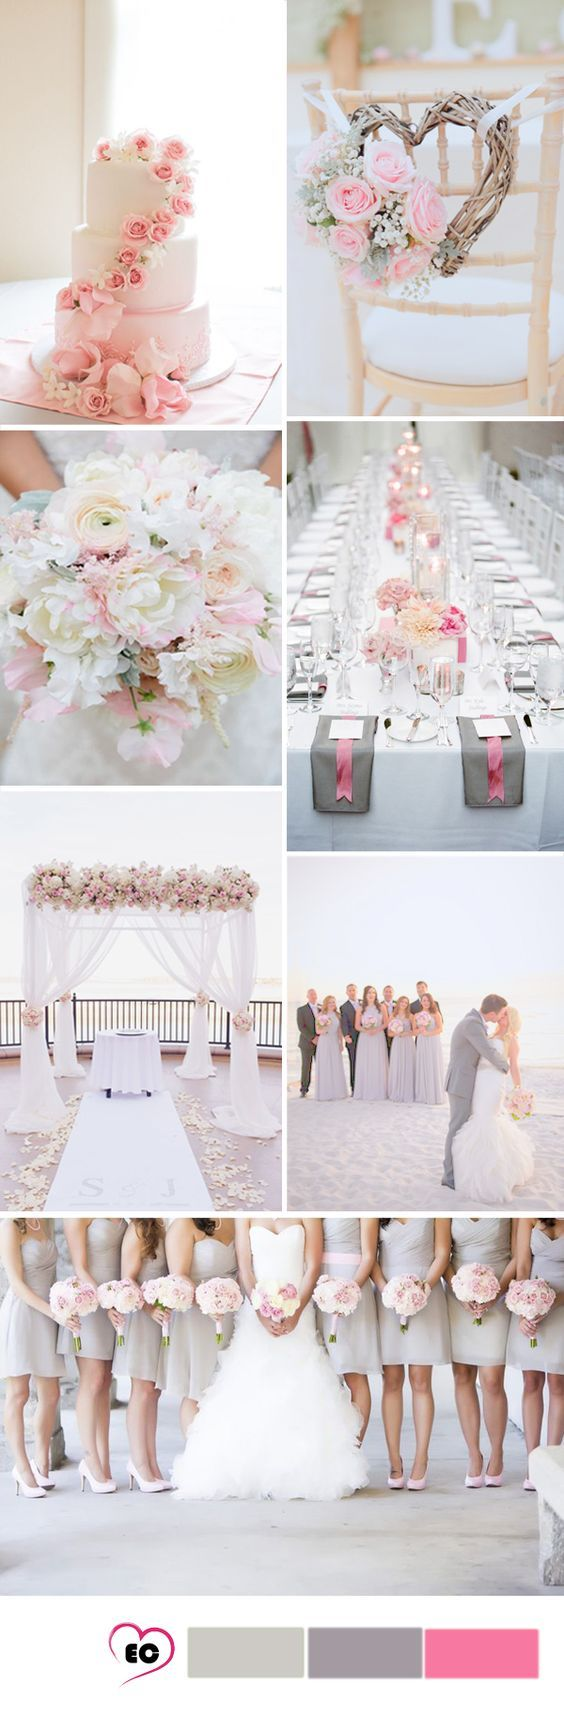 Grey and dusky pink theme